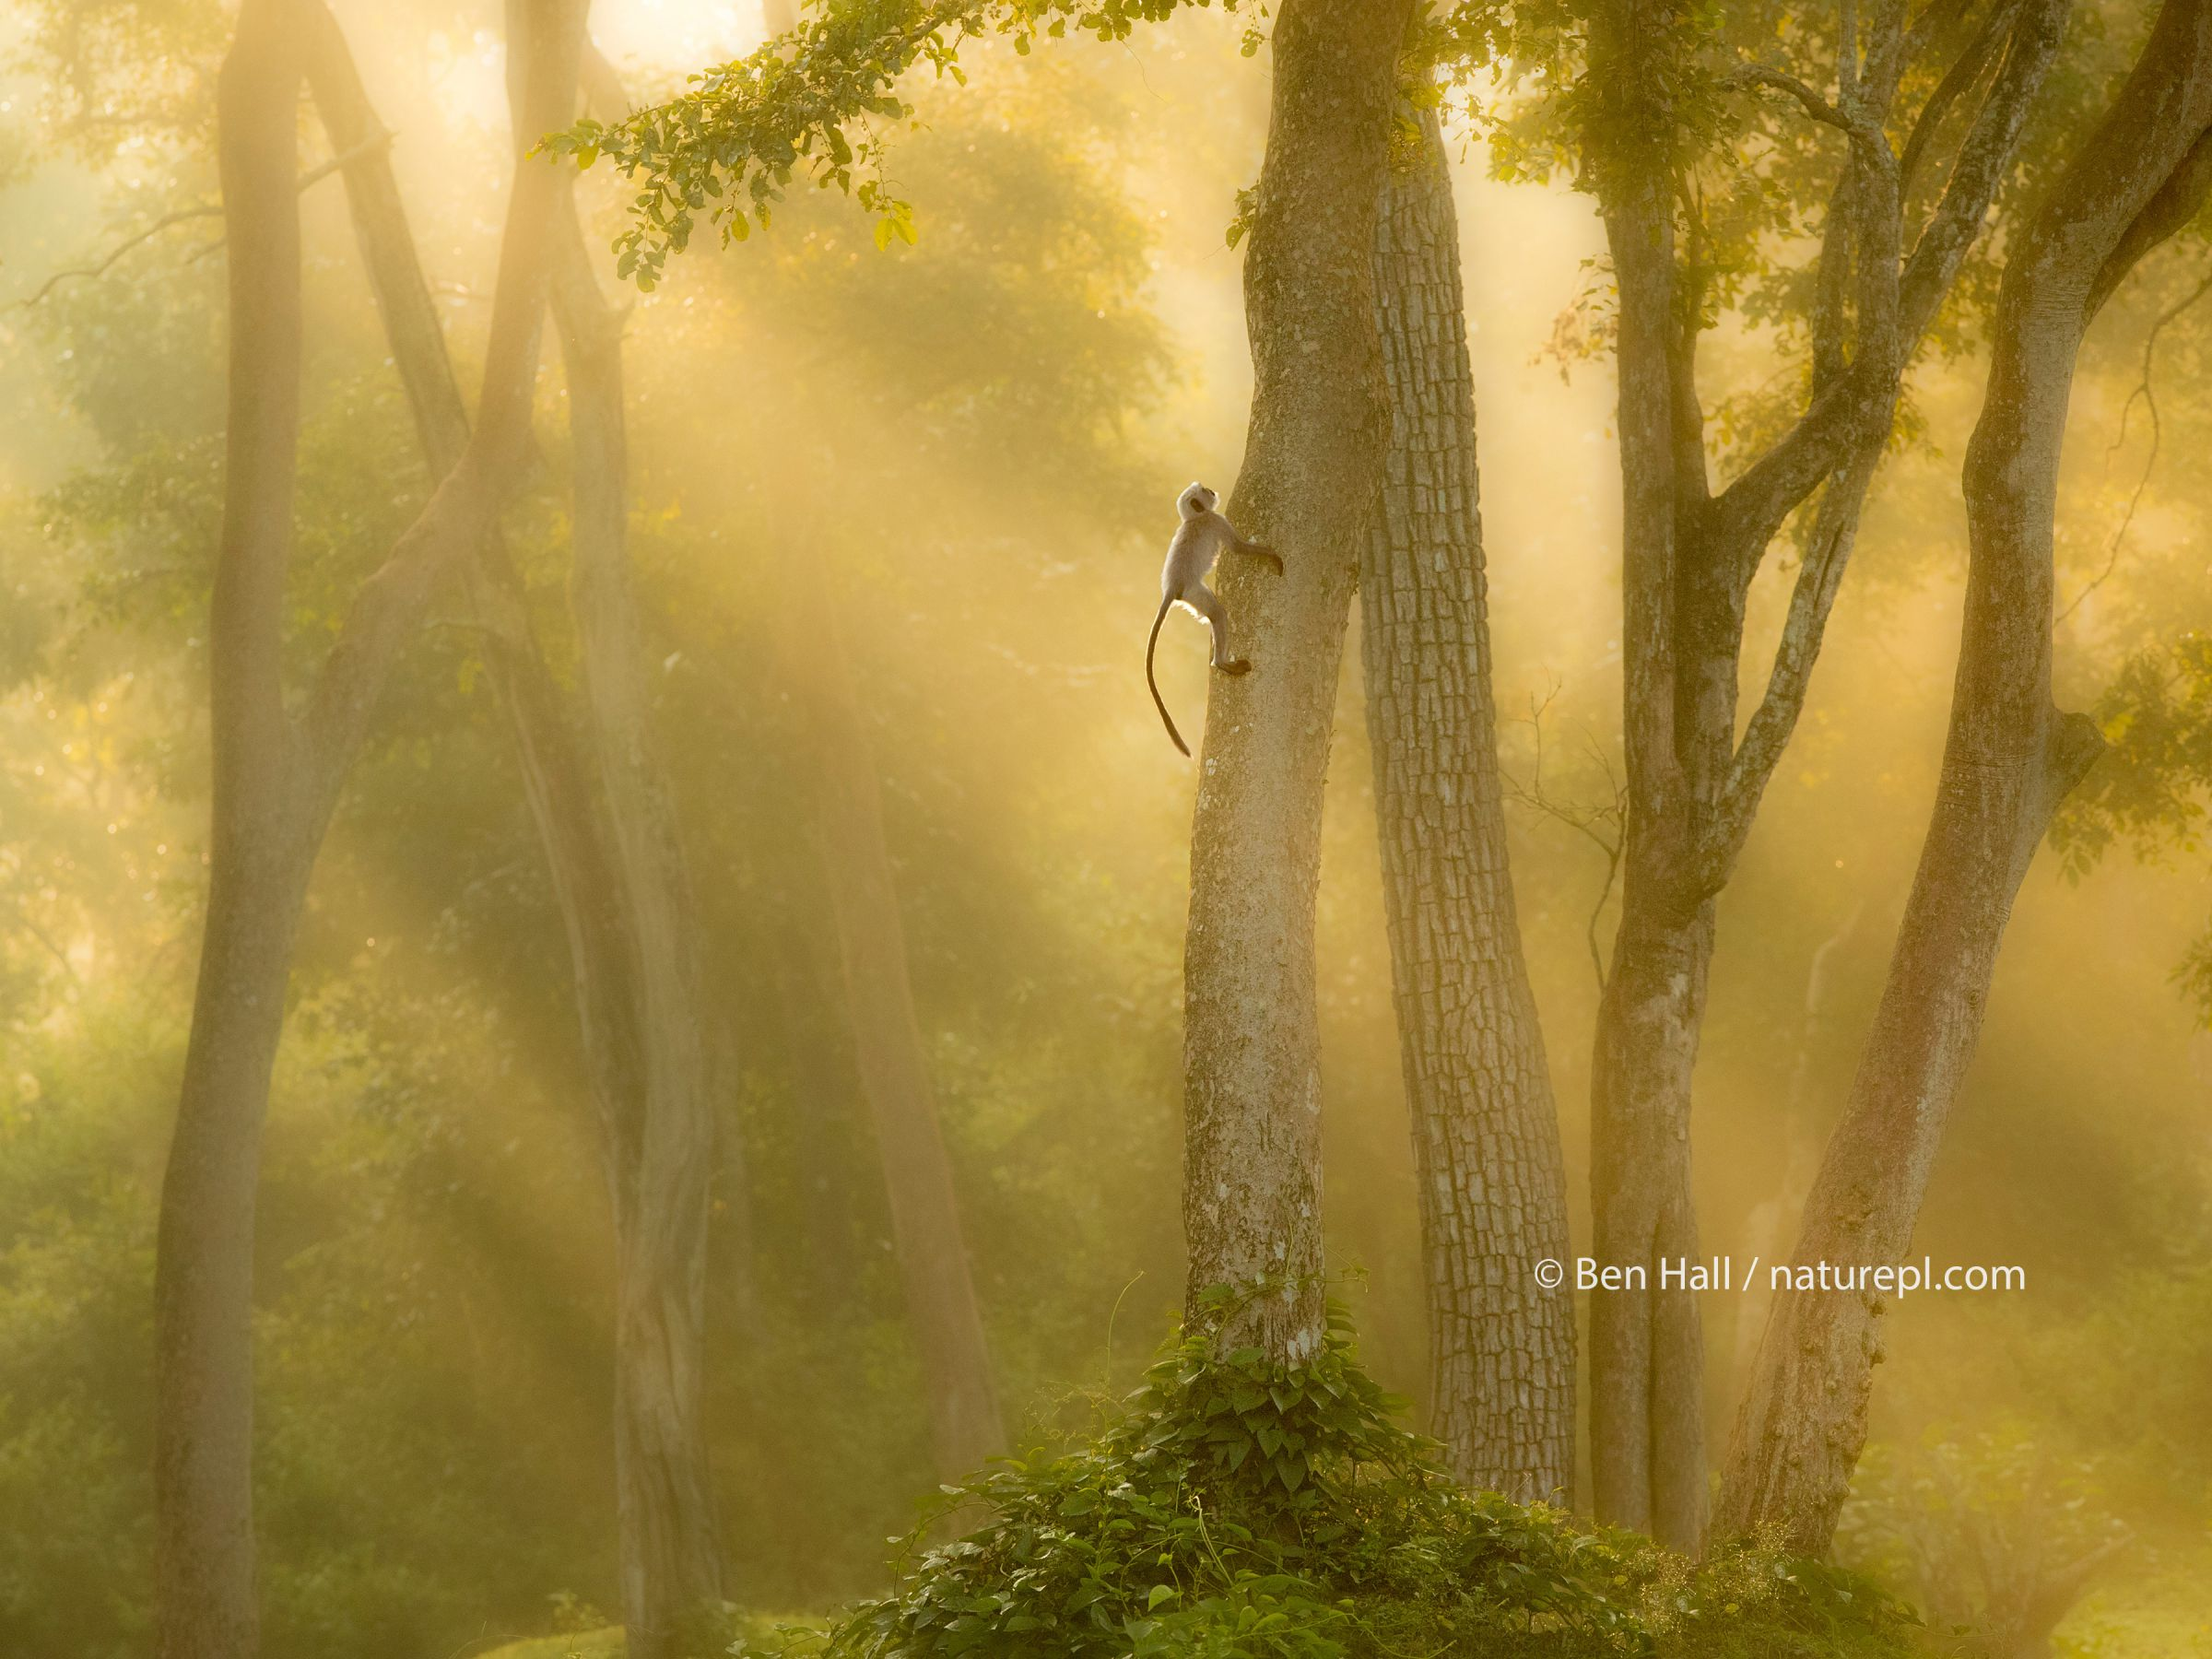 Langur monkey (Semnopithecus) climbing tree in misty forest at dawn, India, November.